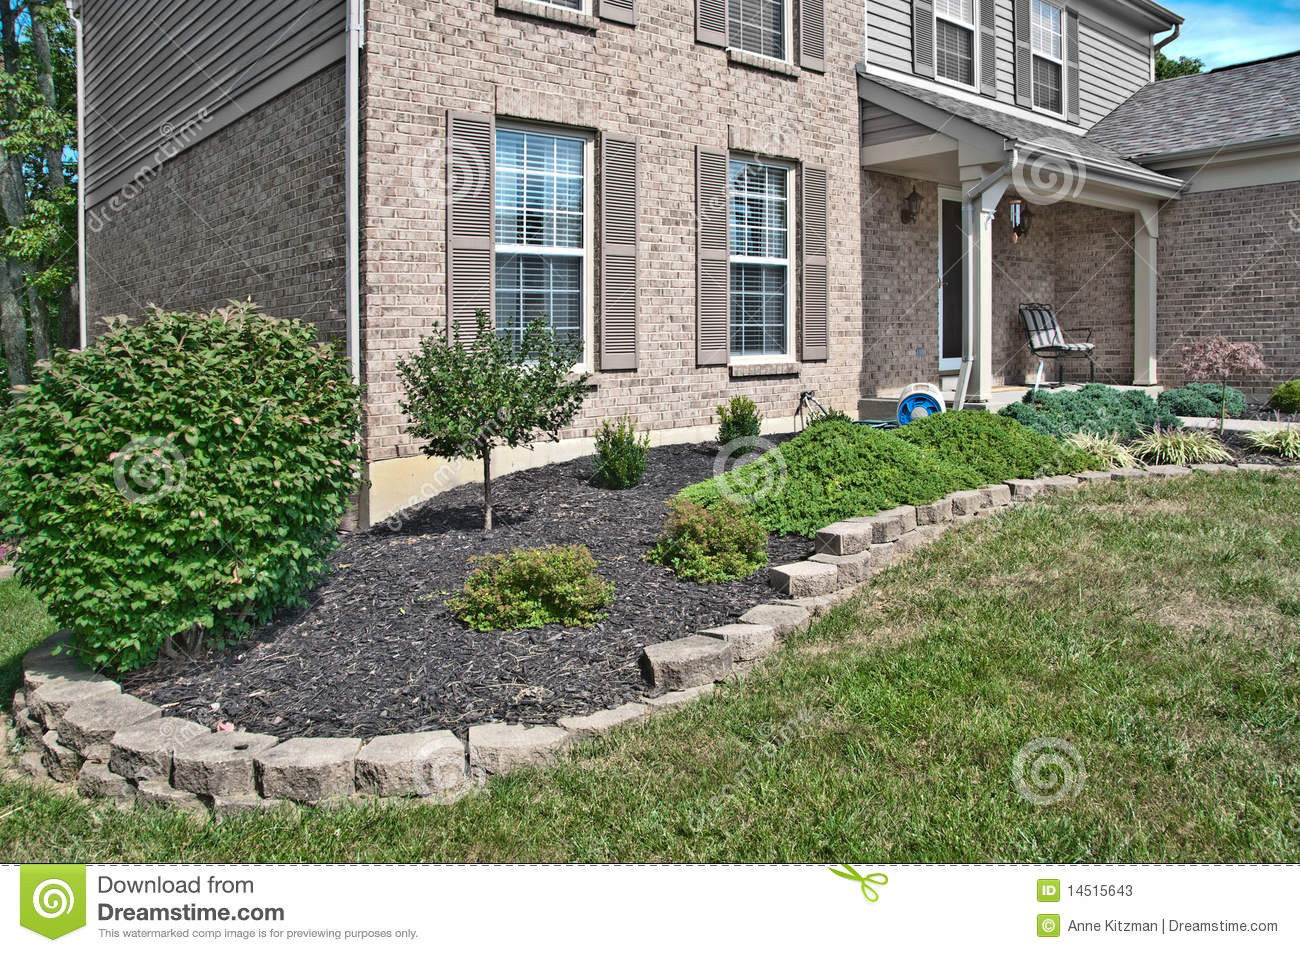 Landscaping Bricks : Brick home landscaping beds stock photos image